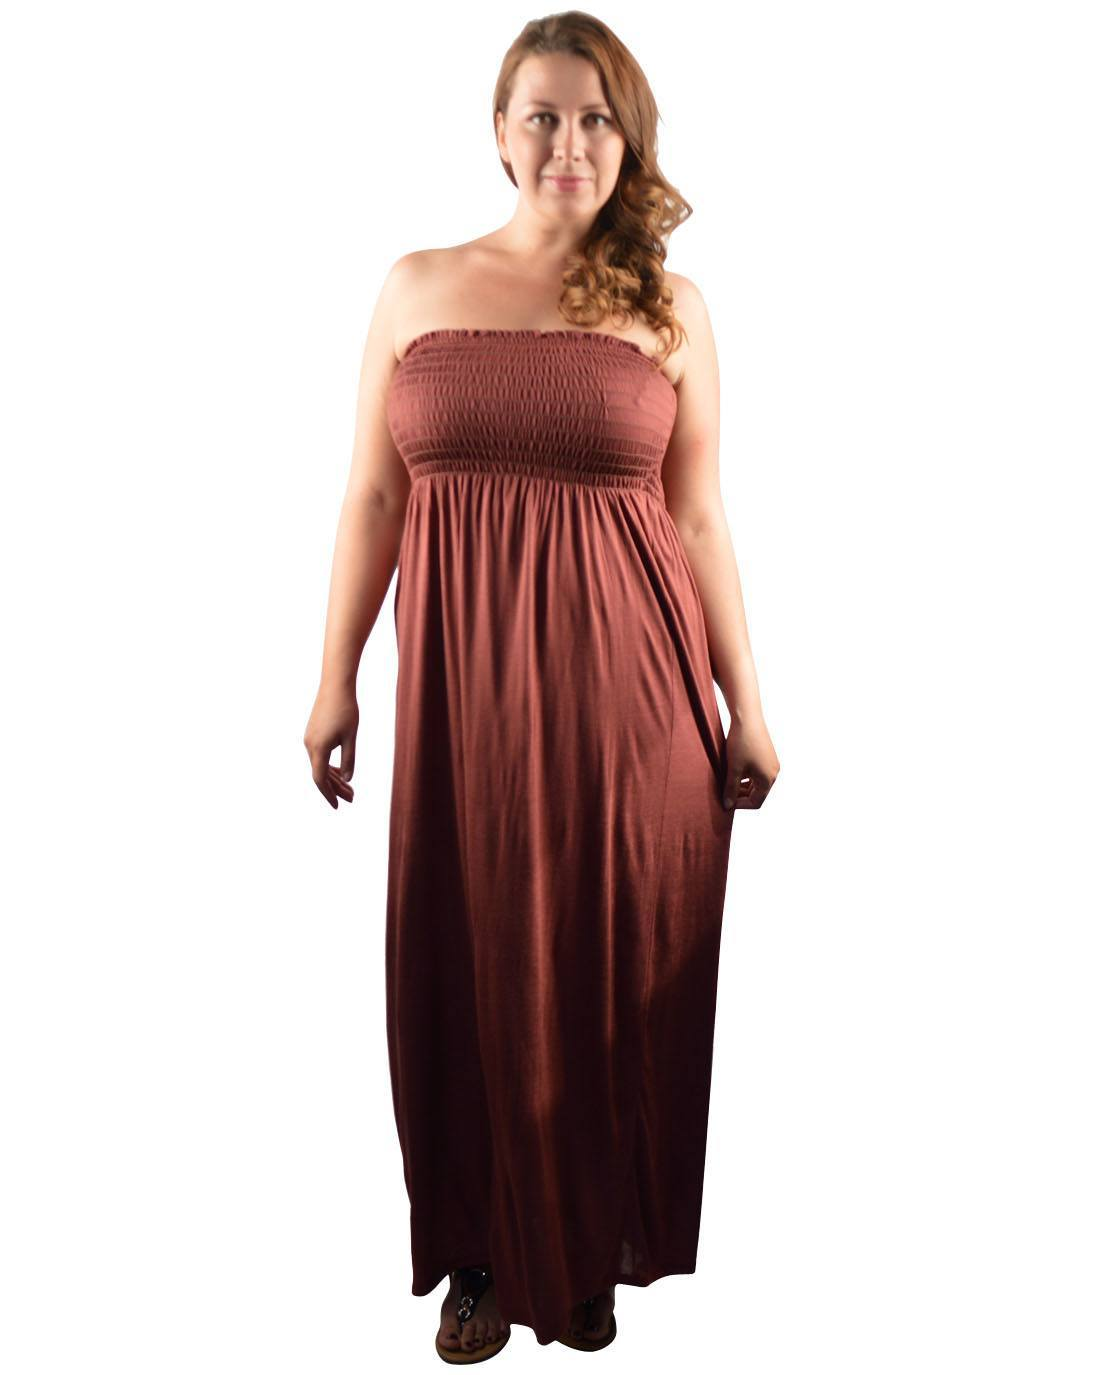 Curvy Sense is here to make life a whole lot easier for you plus size dolls! We have the latest trends, at affordable prices, for a one-stop clothing destination.